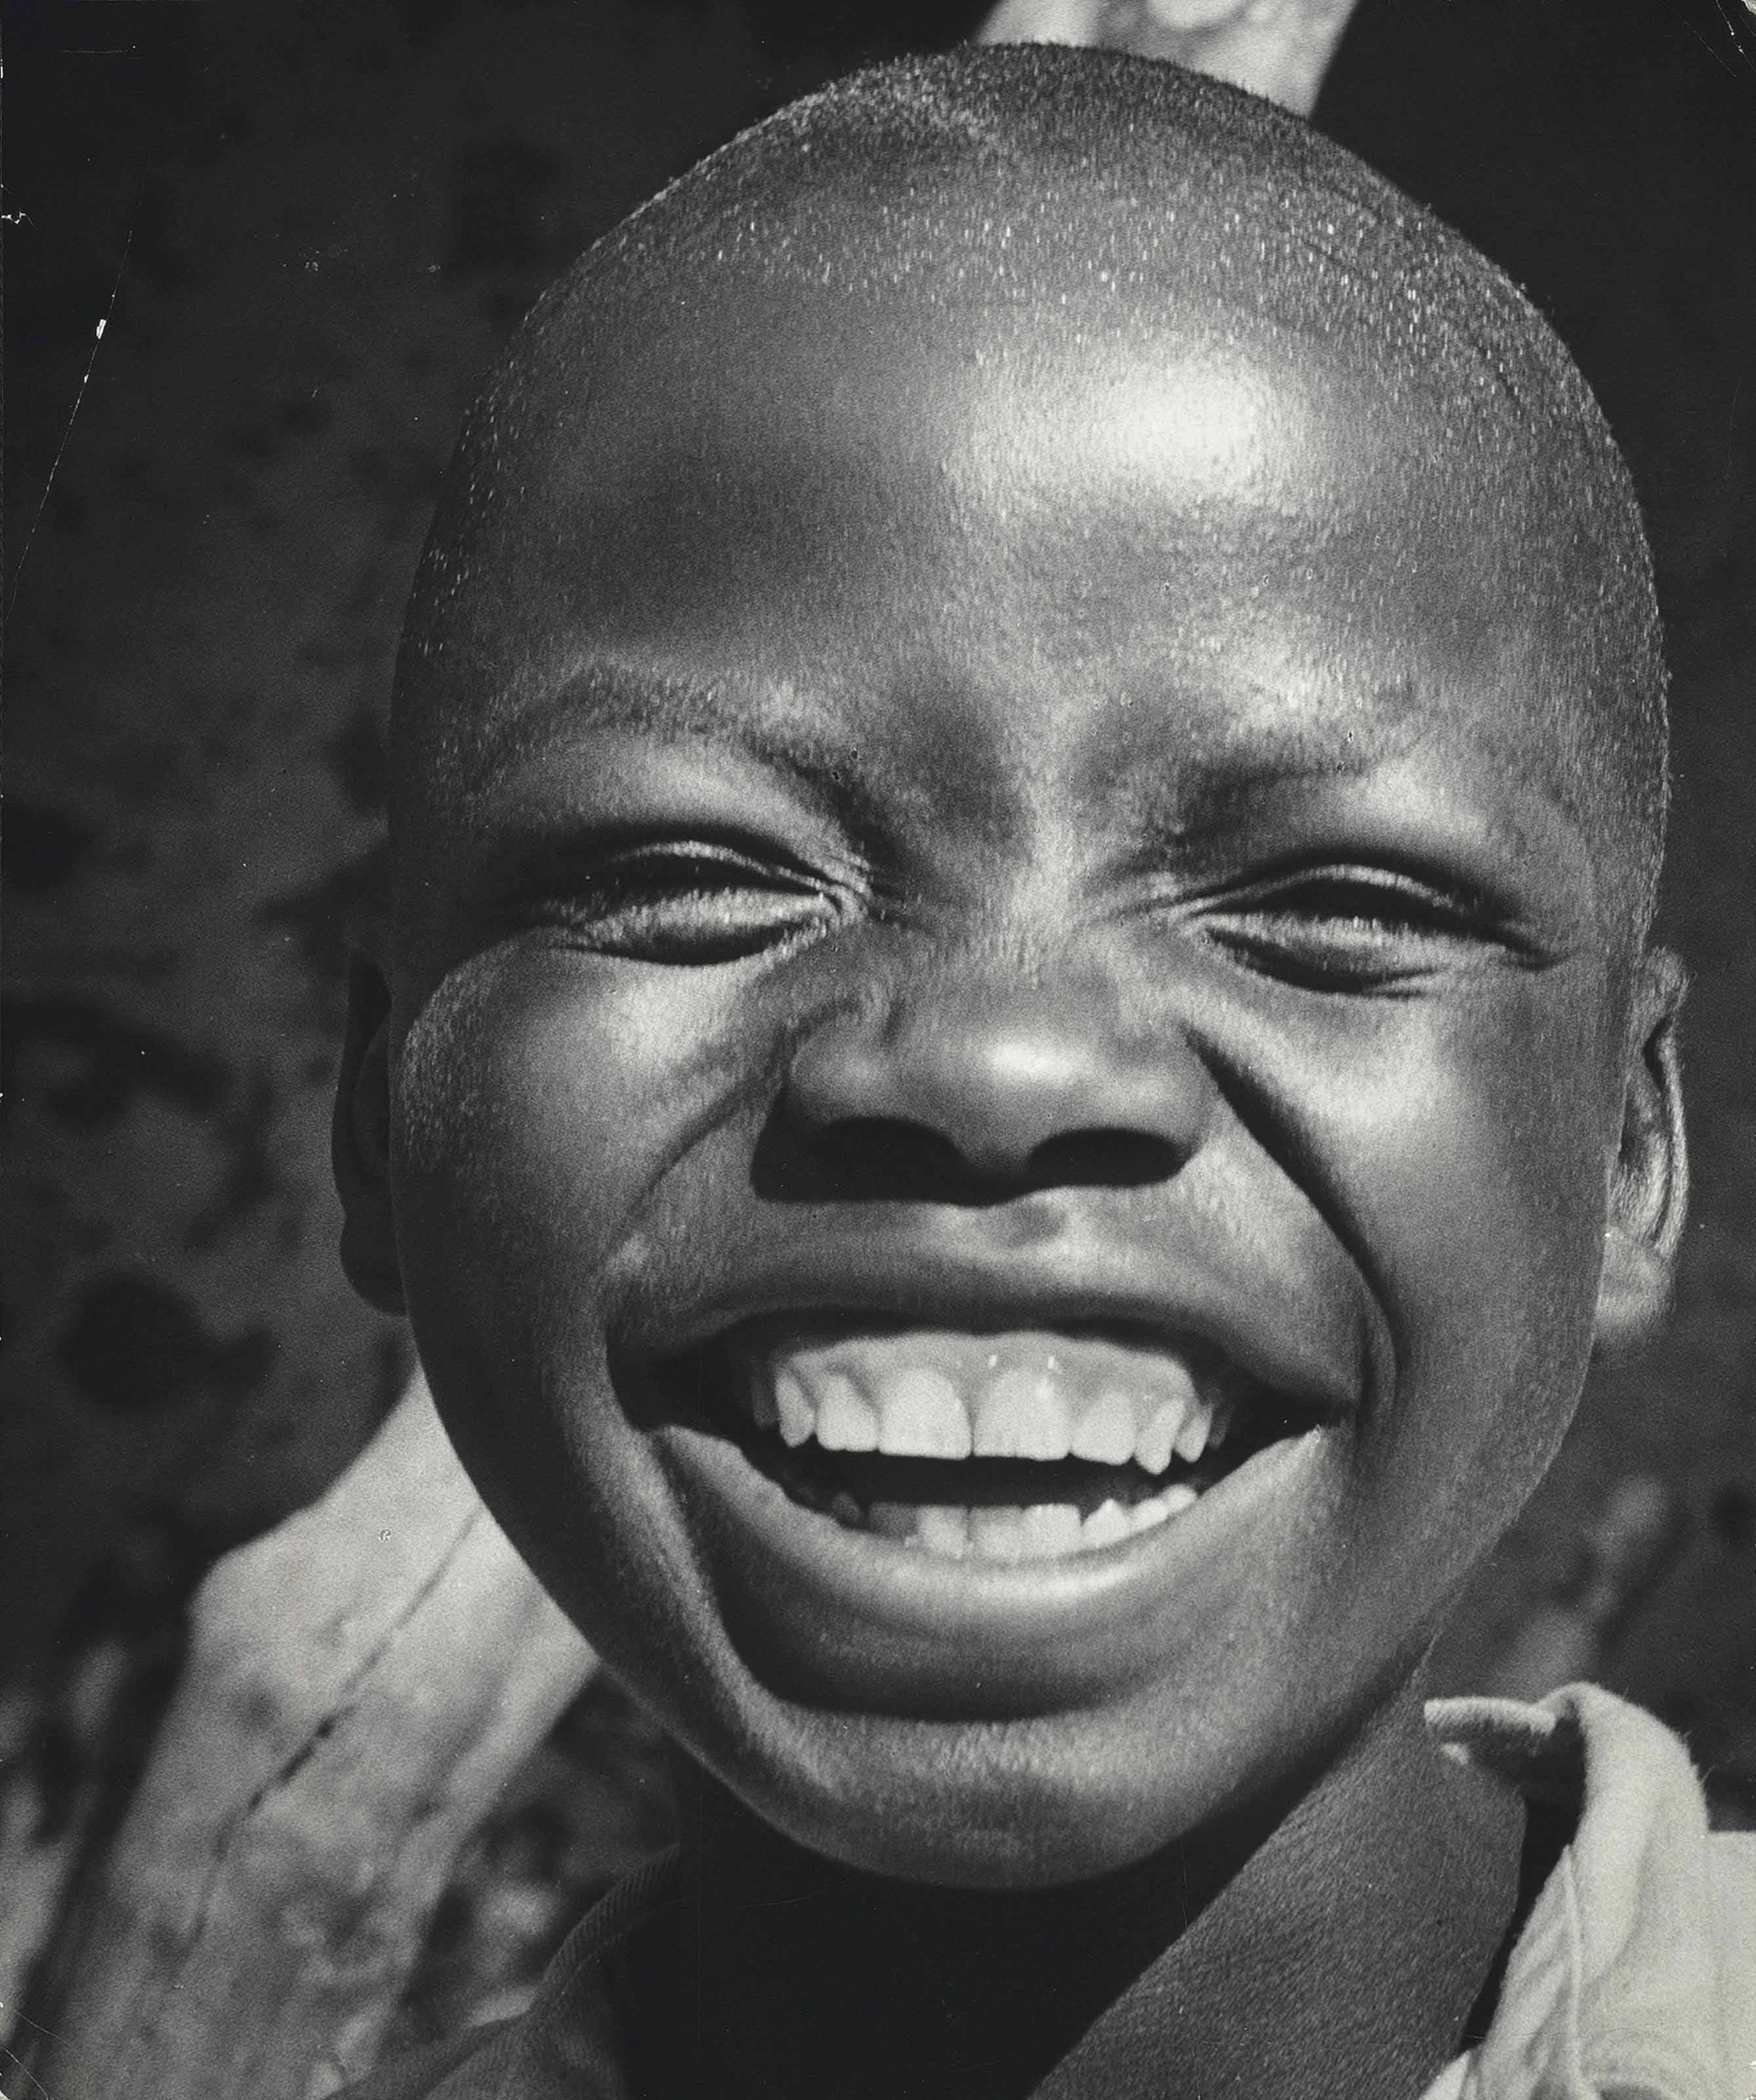 Images of Africa, 1940s